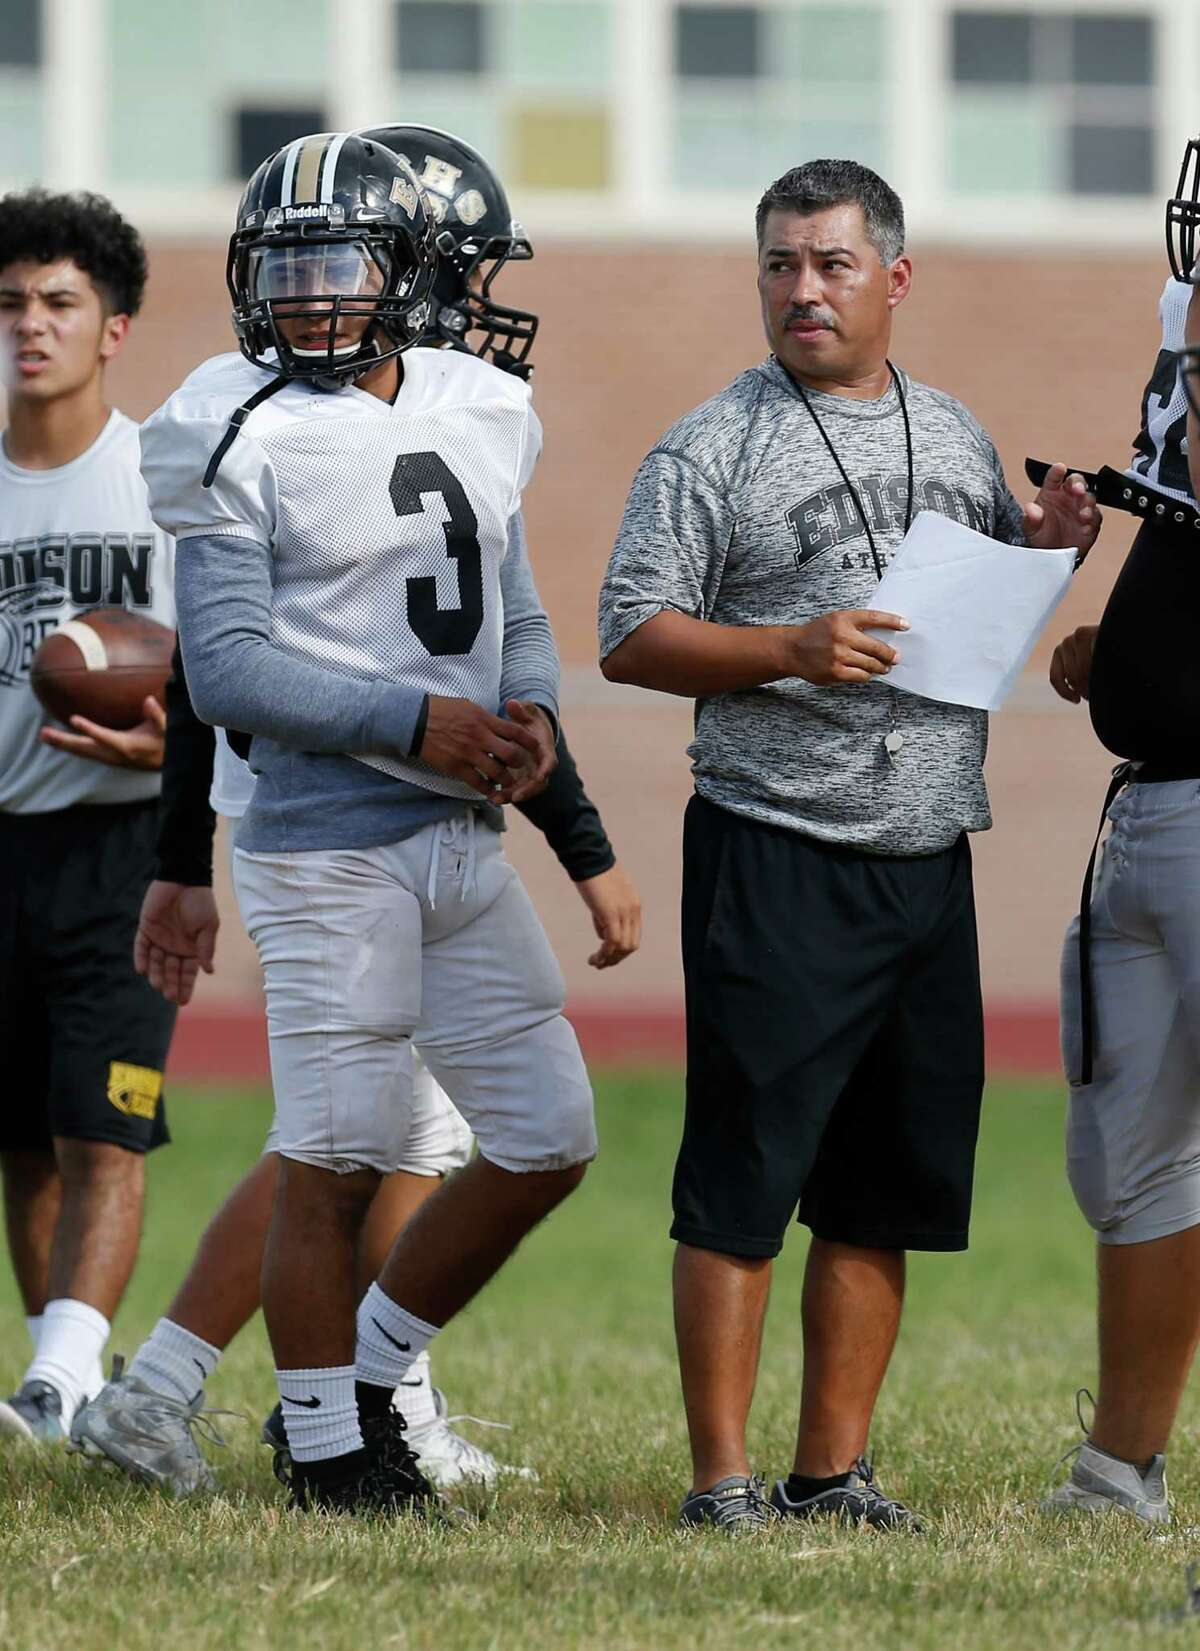 Edison running back Matthew Garcia (3), flanked by coach Albert Torres, practices at the school on Sept. 6, 2016.